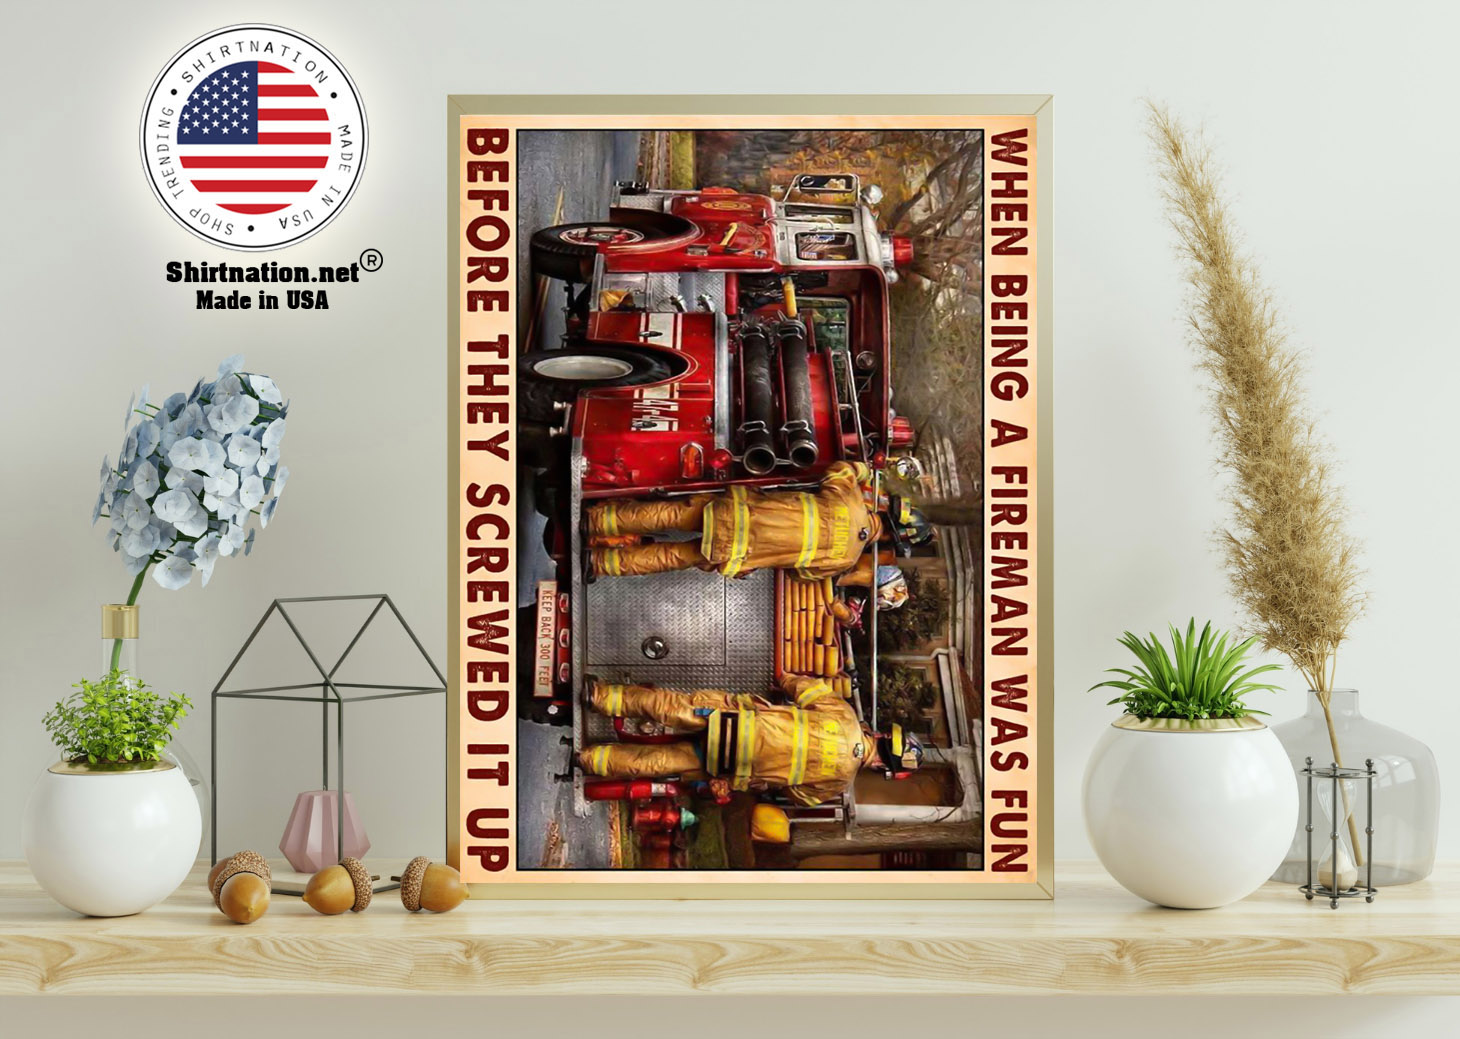 When being a fireman was fun before they screwed it up poster 11